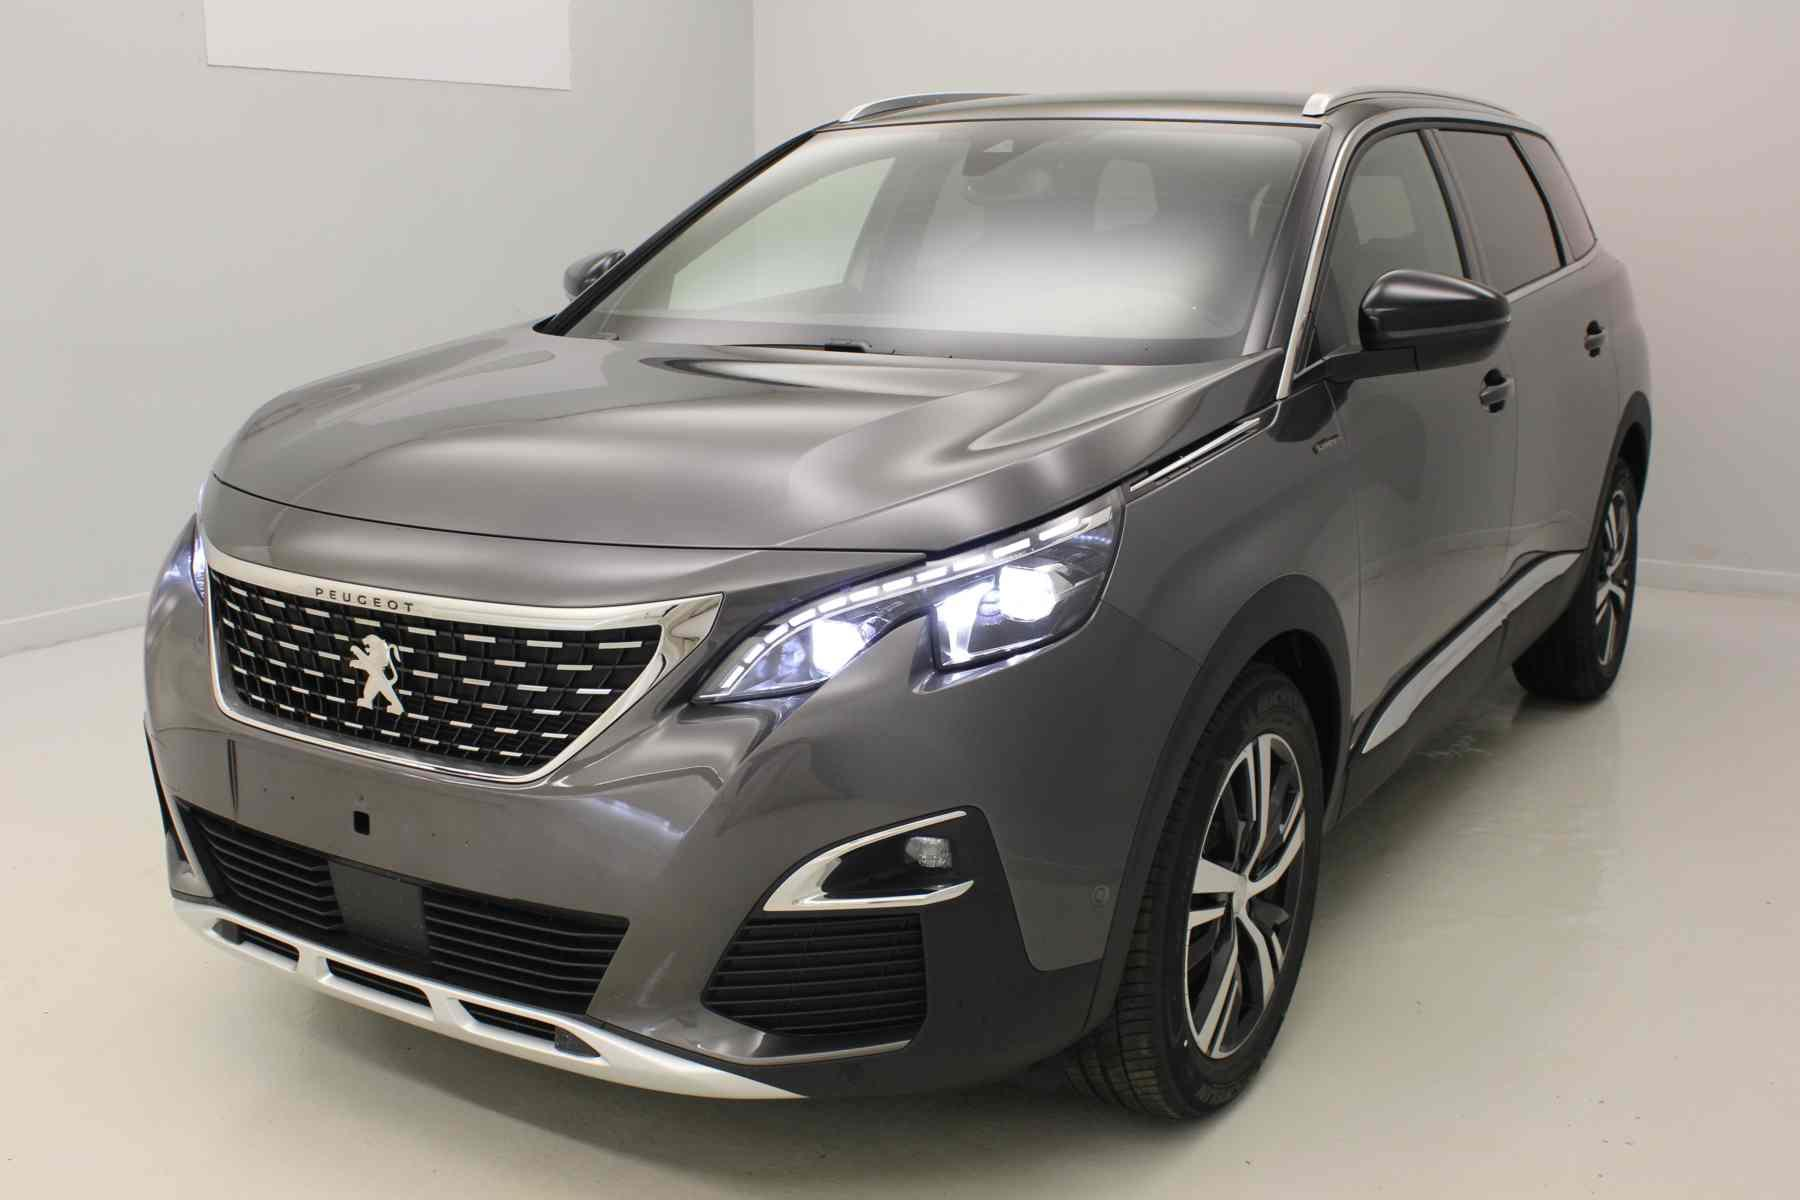 peugeot 5008 nouveau suv 1 5 bluehdi 130ch s s eat8 gt line avec options auto ies. Black Bedroom Furniture Sets. Home Design Ideas